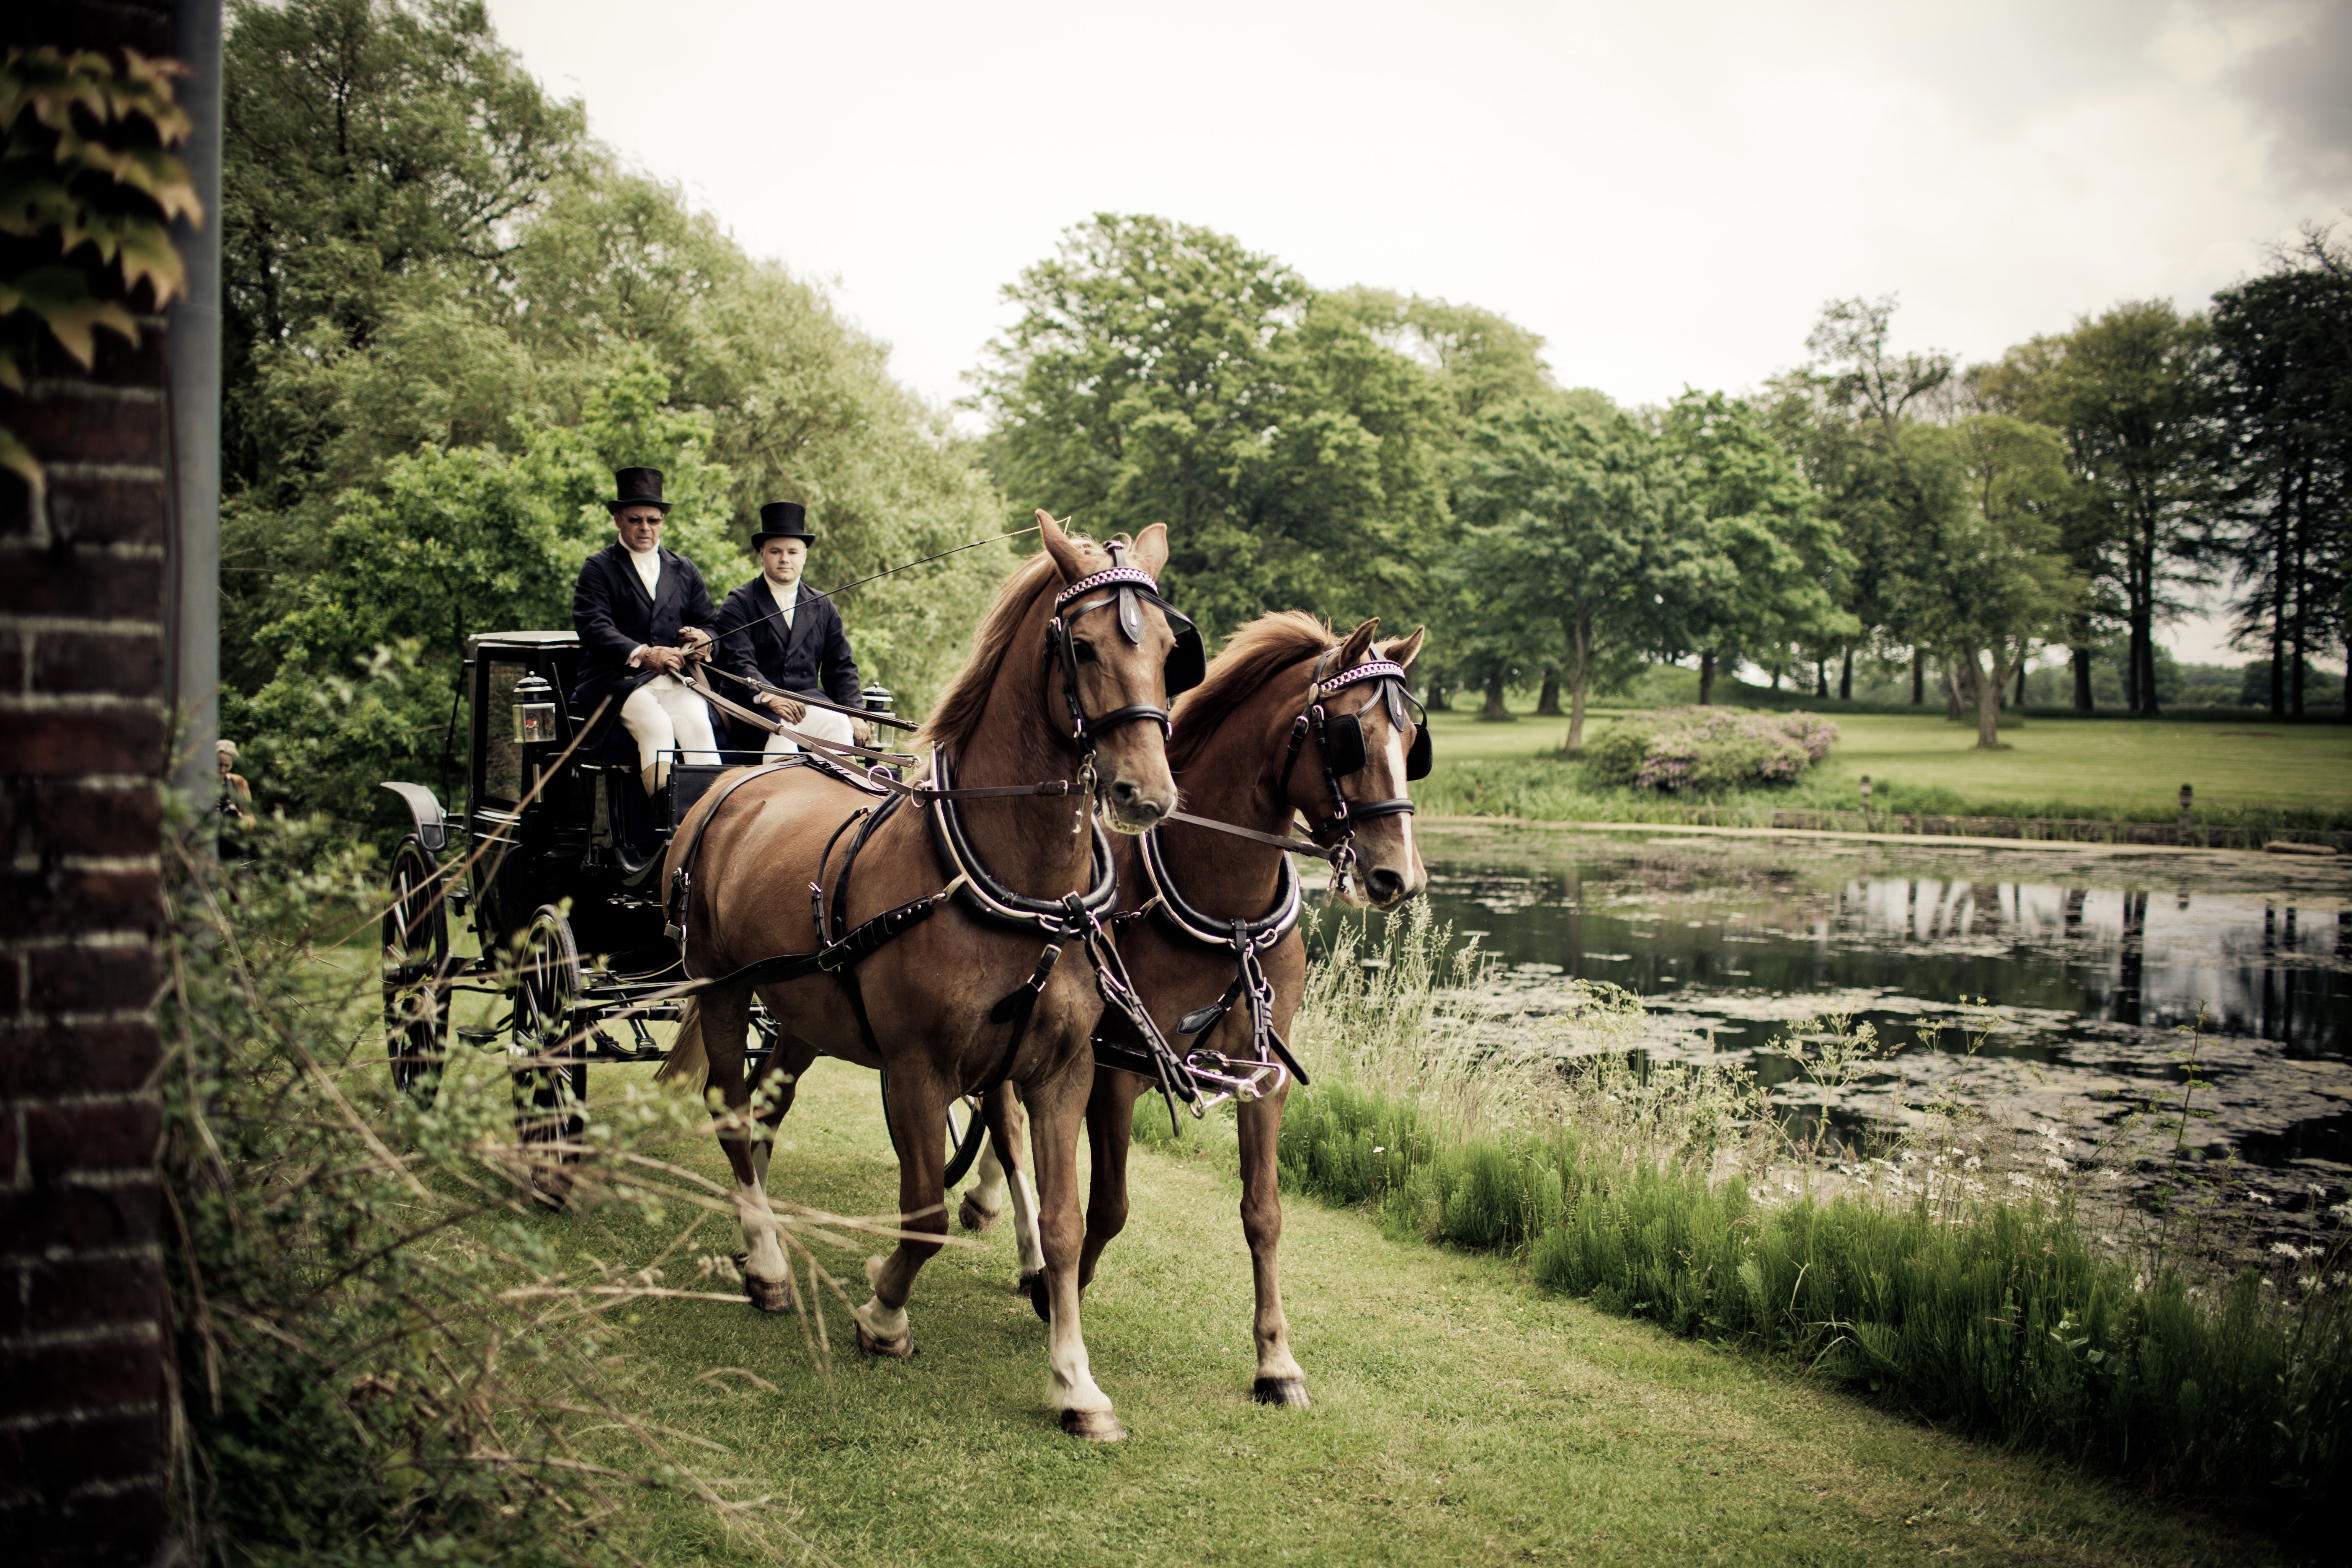 Horses in Park, Agriculture, Park, Wagon, Trees, HQ Photo